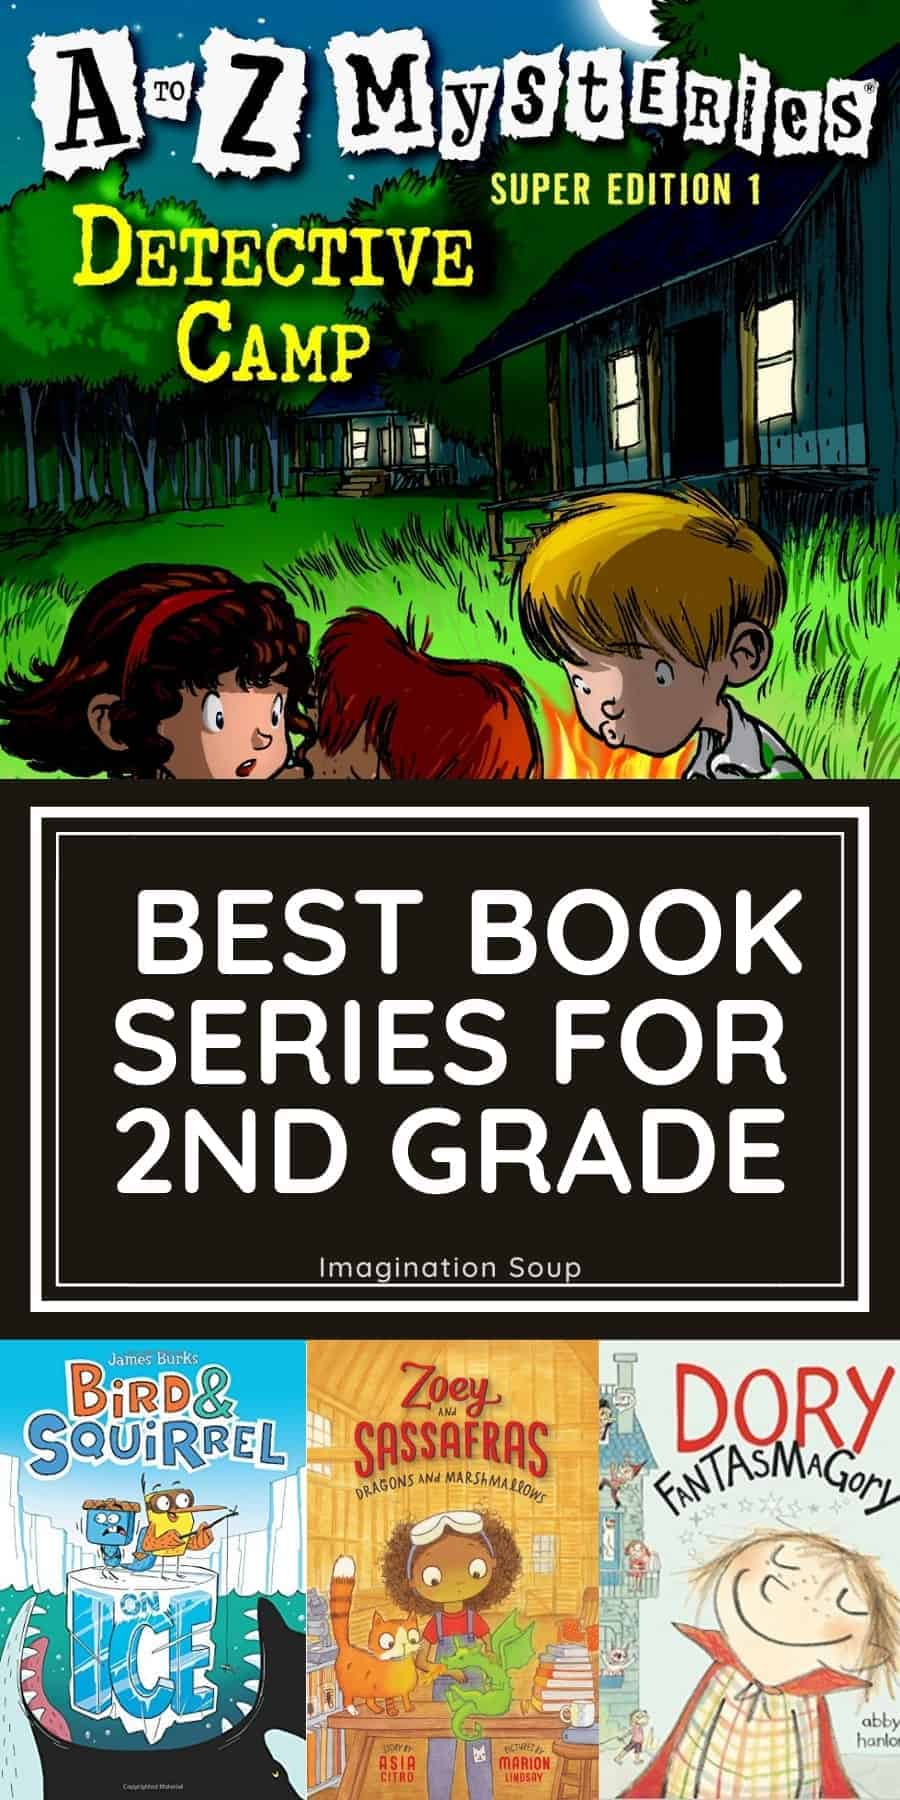 20 Fantastic Chapter Book Series for 2nd Graders